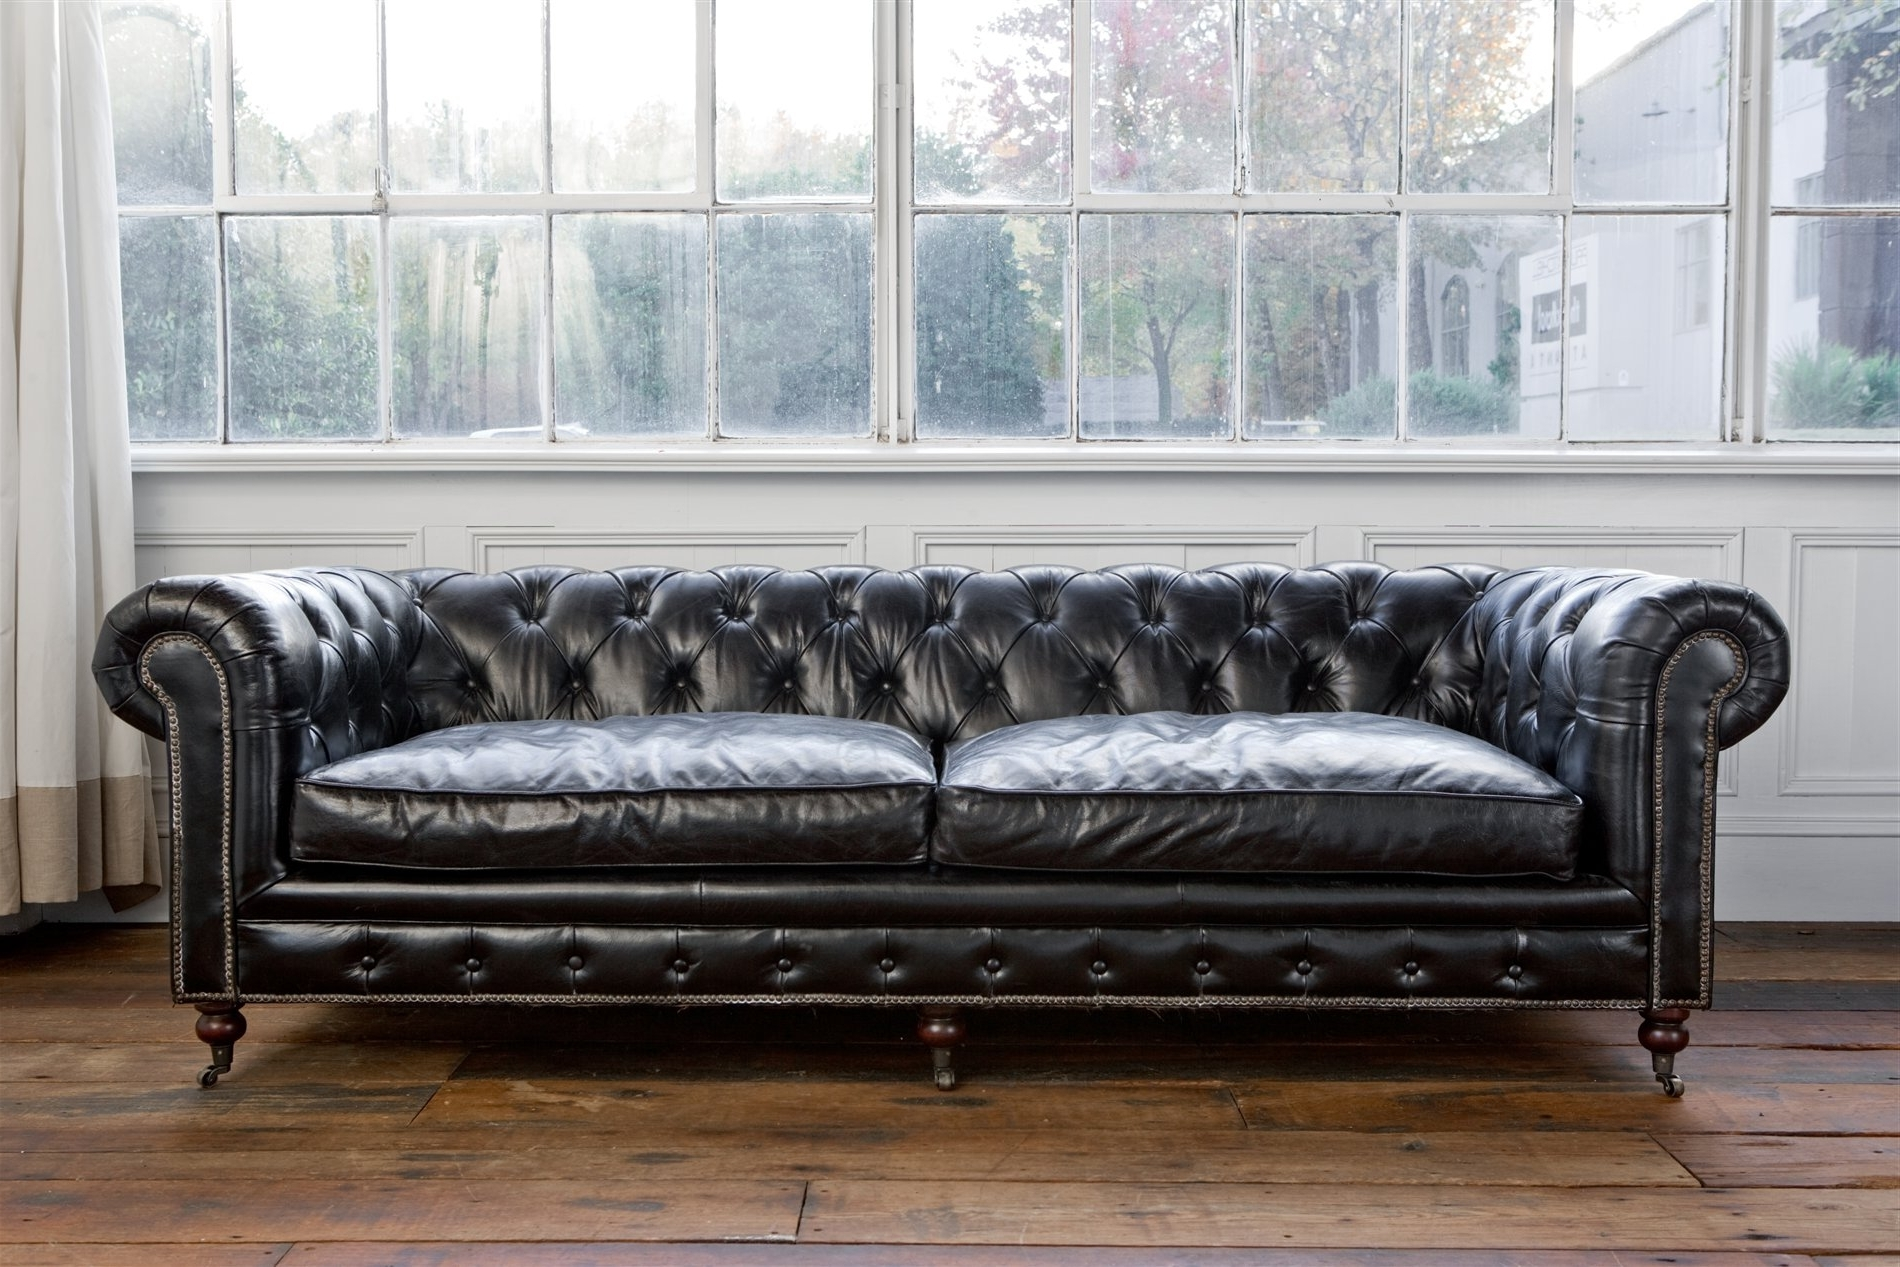 Most Recently Released Tufted Leather Chesterfield Sofas For Regina Andrew Design 4 164Vbk Extra Deep Blk Chesterfield Sofa Med (View 6 of 20)